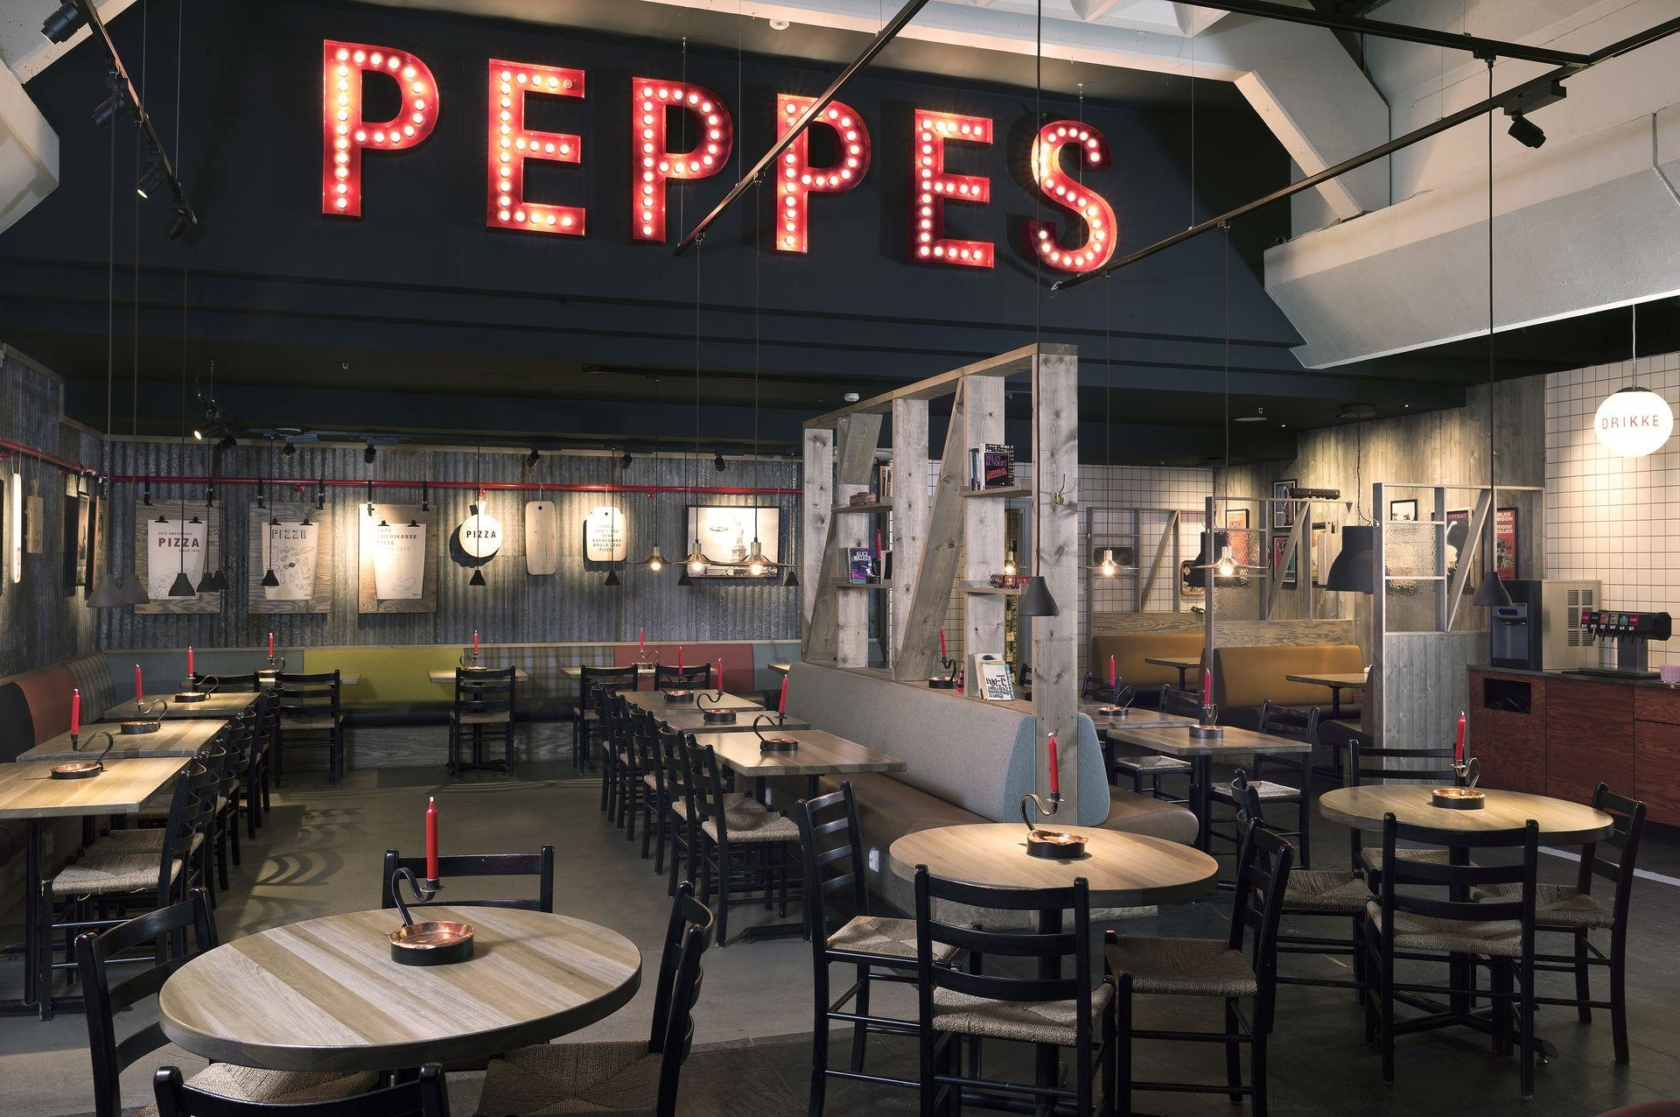 peppes pizza bergen